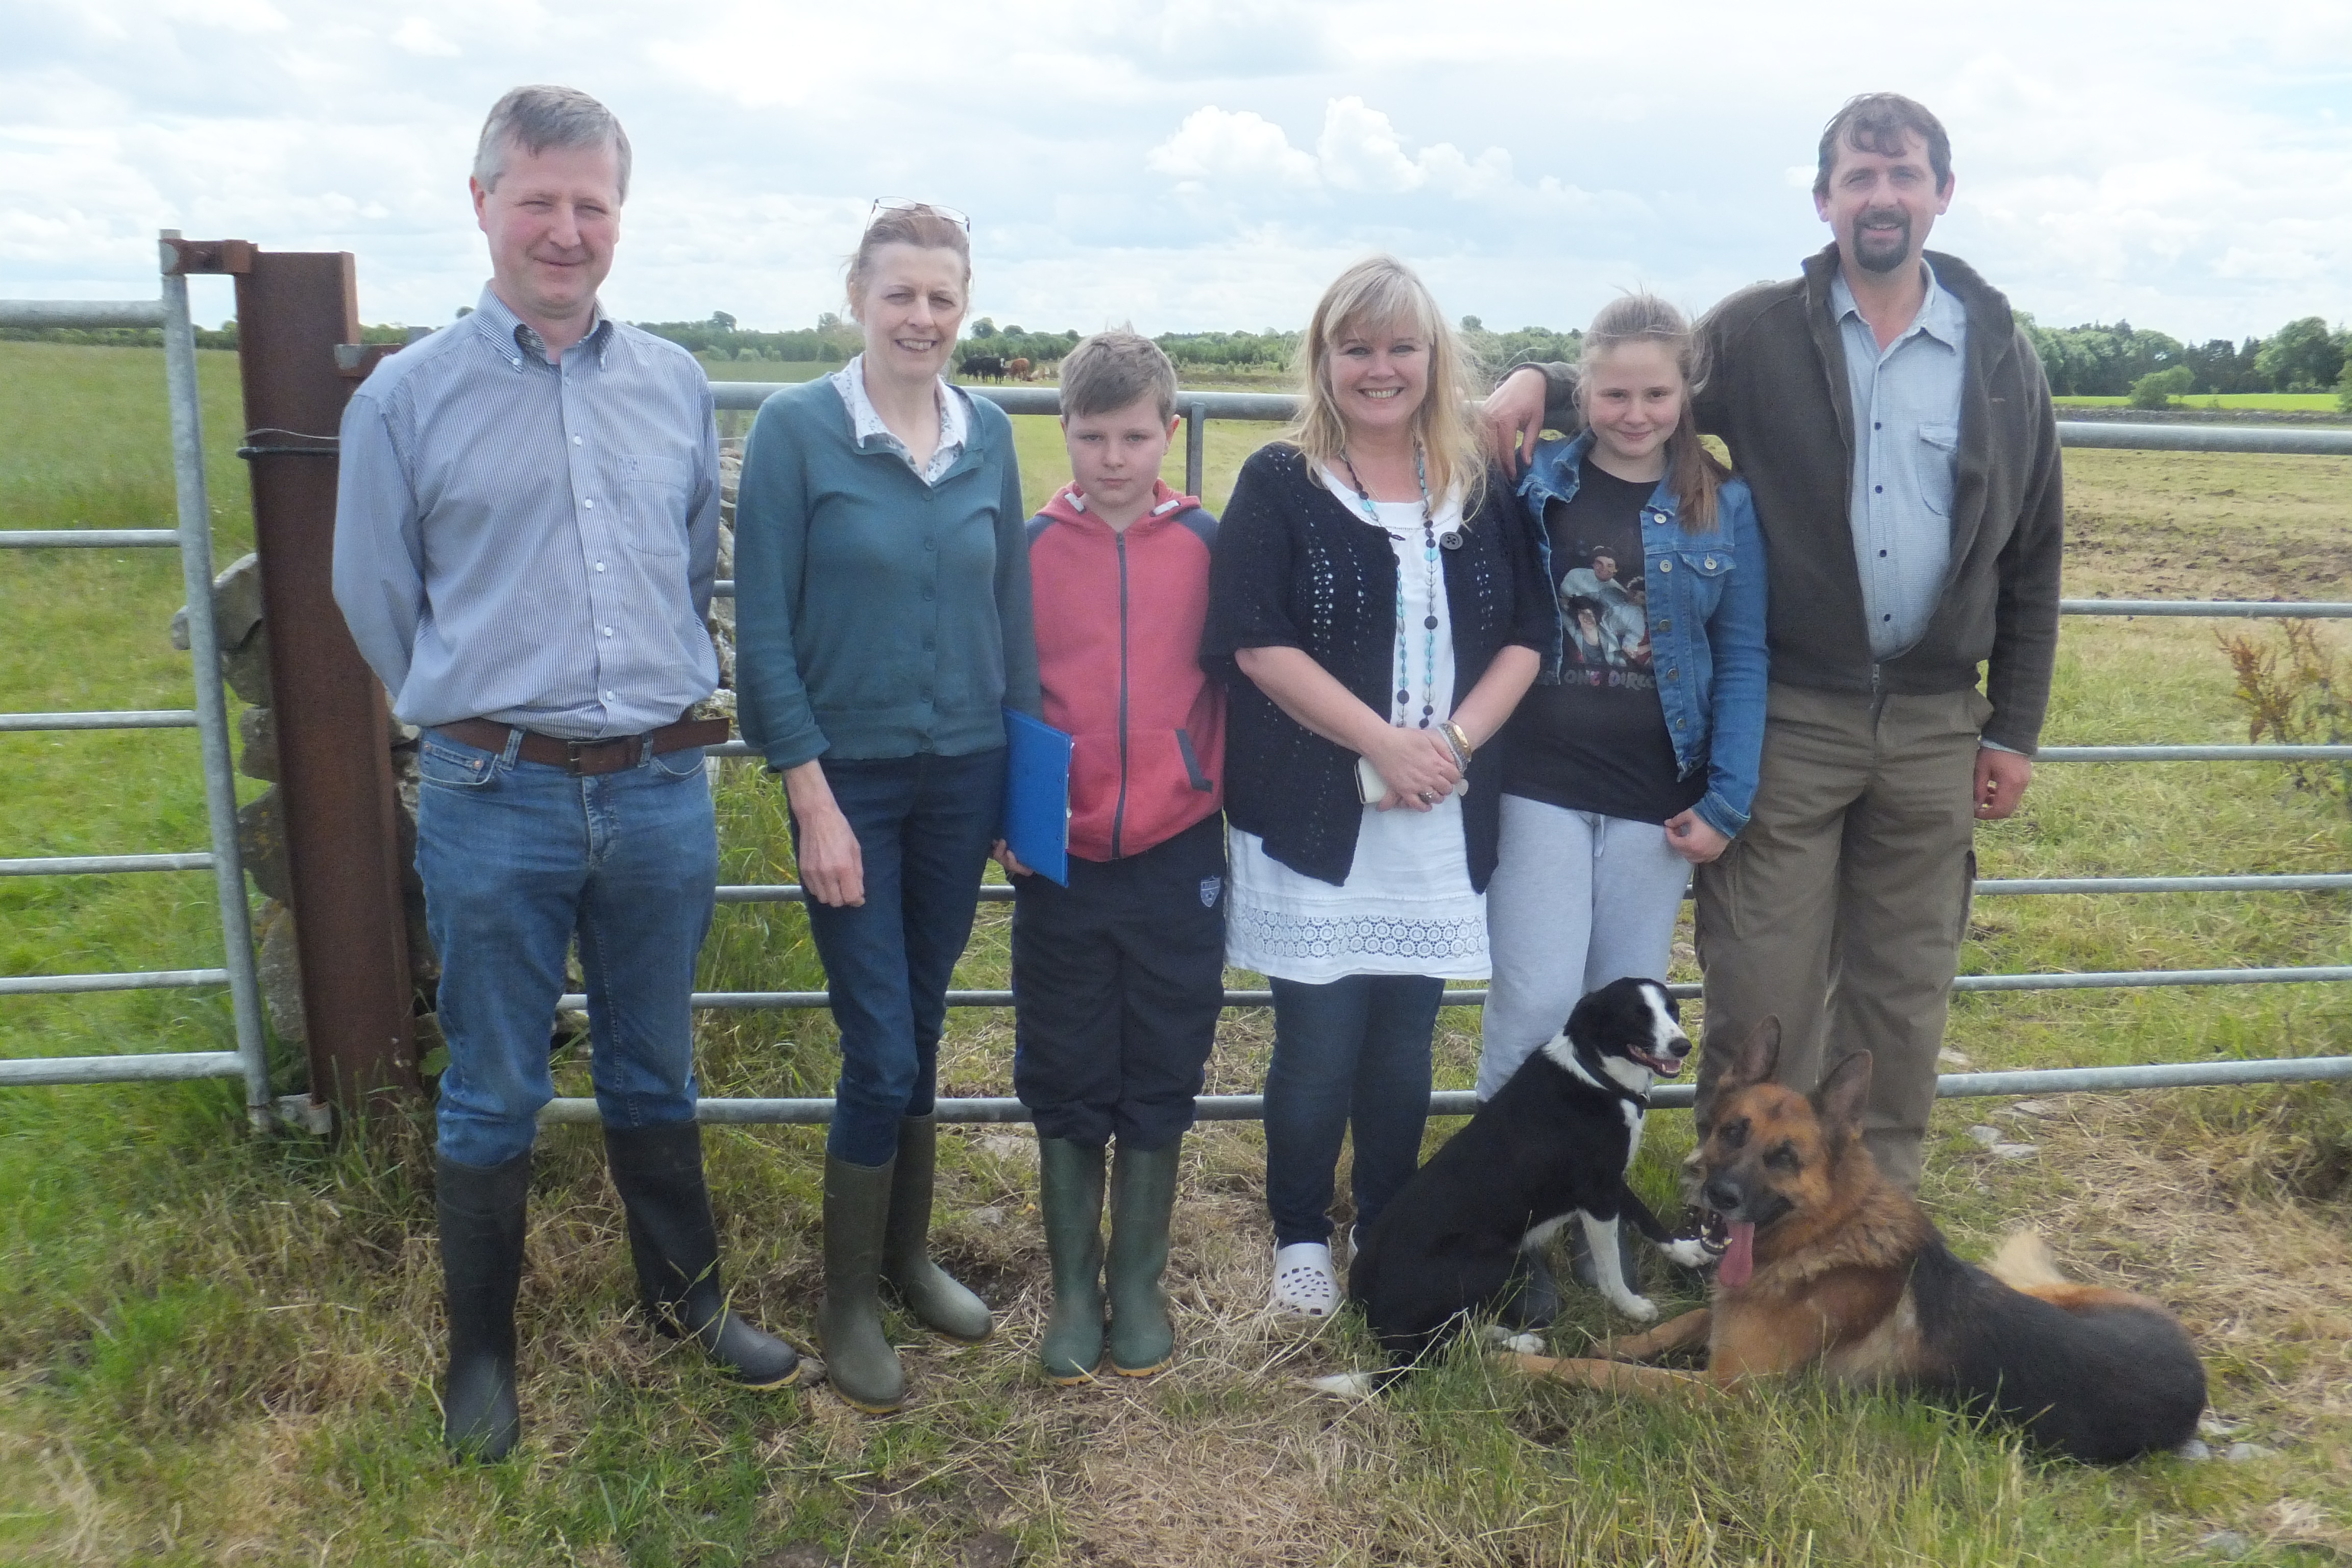 Teagasc advisers Austin Callaghan and Geraldine Hynes (pictured on the left) join the Dixon family, Anna and Oliver along with children Daniel and Hazel to discuss plans for the upcoming organic demonstration farm walk which will be held on the Dixon's farm on Thursday, 17th July at 2pm.